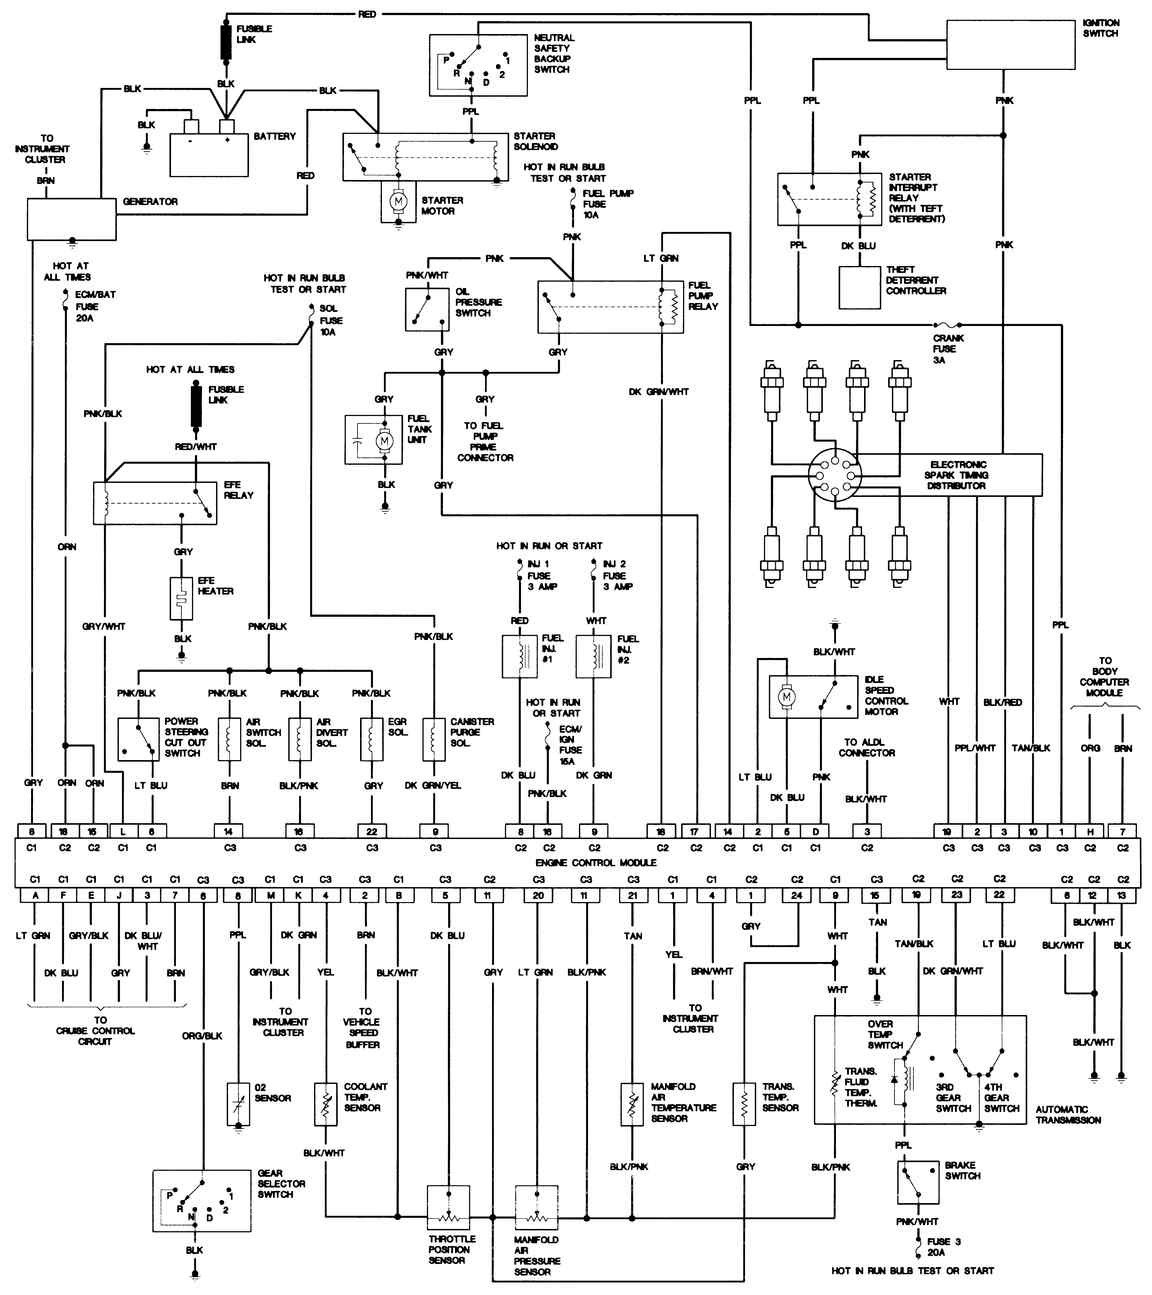 96 bounder wiring diagram fleetwood providence wiring diagram wiring diagram data  fleetwood providence wiring diagram